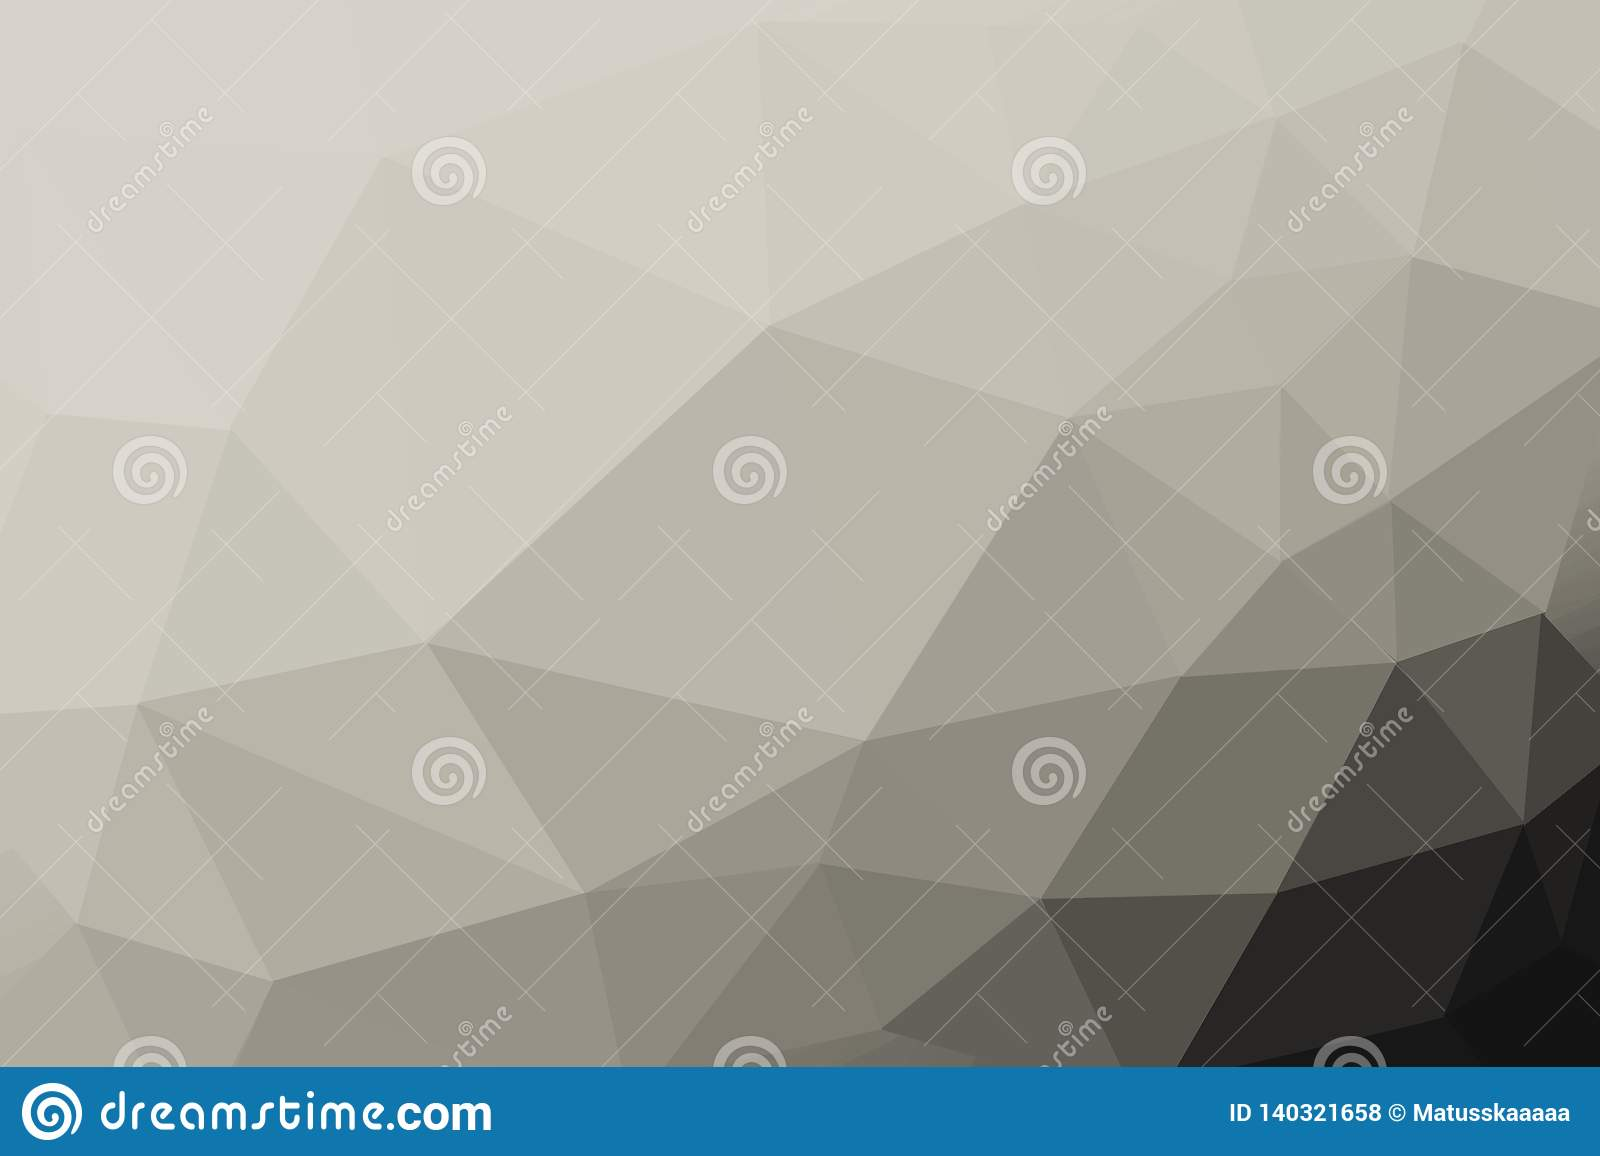 Black And White Platinum Gradient Triangle Background, Abstract